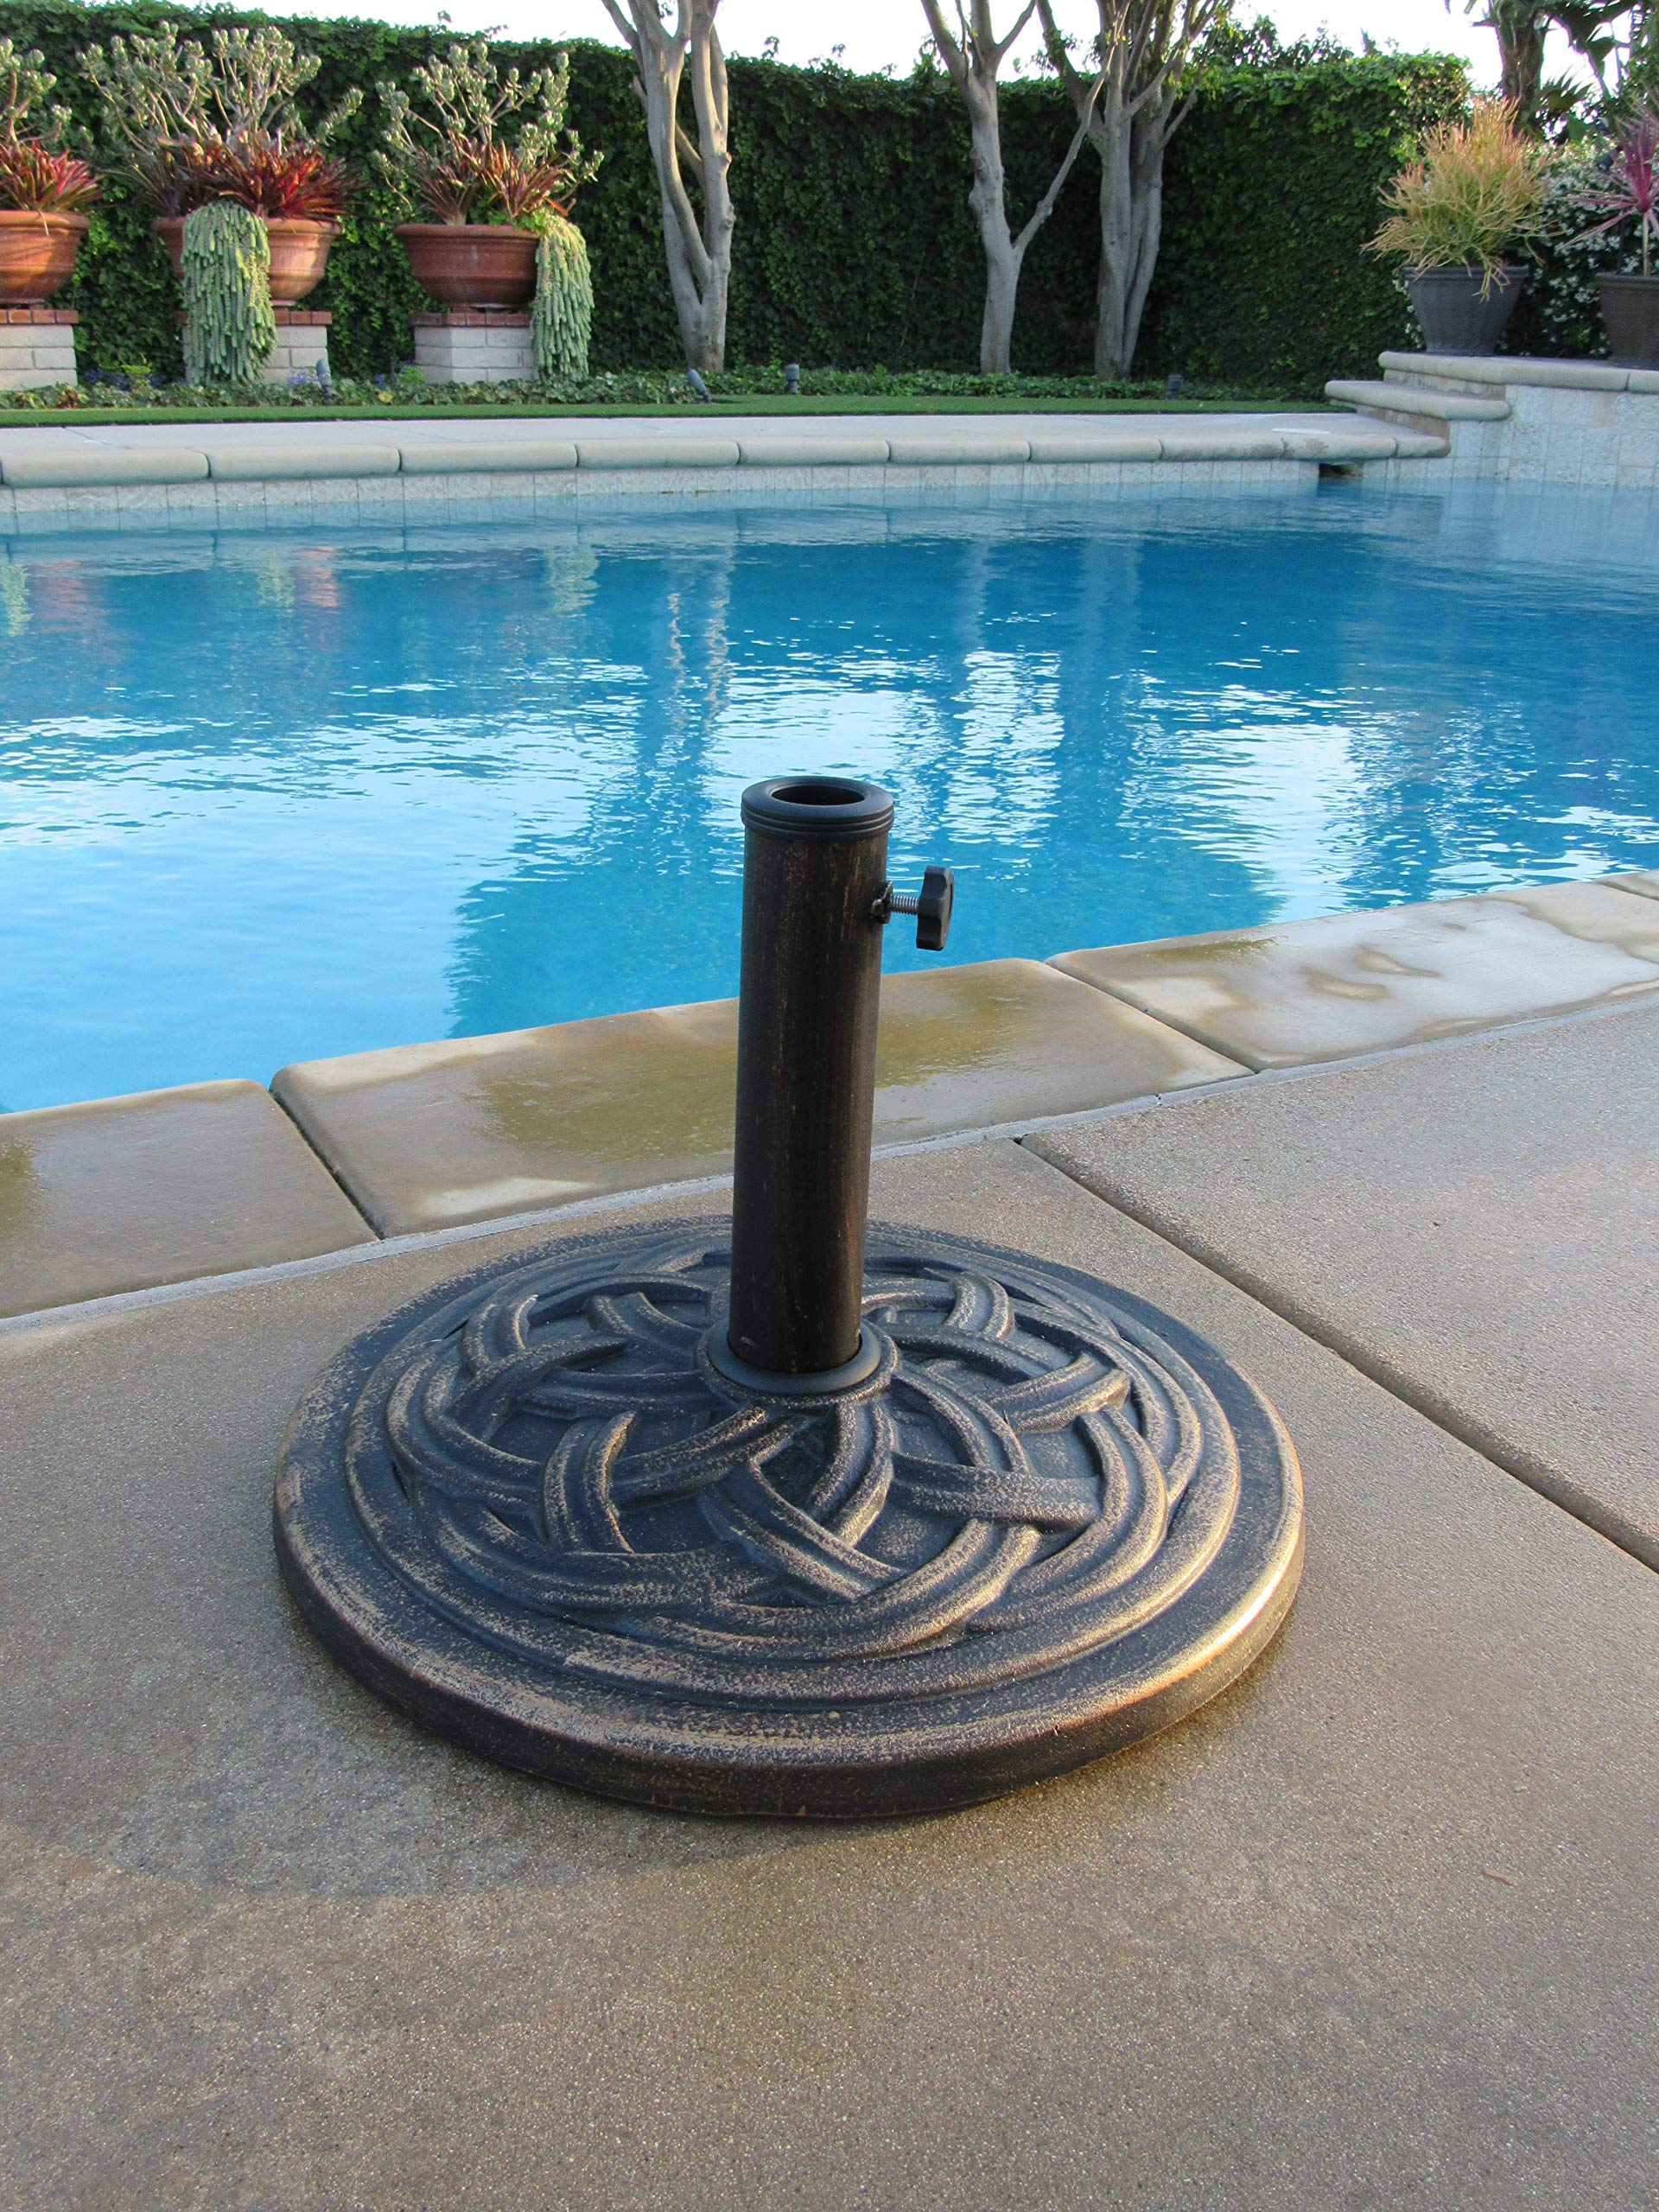 DC America UBP18181-BR 18-Inch Cast Stone Umbrella Base, Made from Rust Free Composite Materials, Bronze Powder Coated Finish by D C America